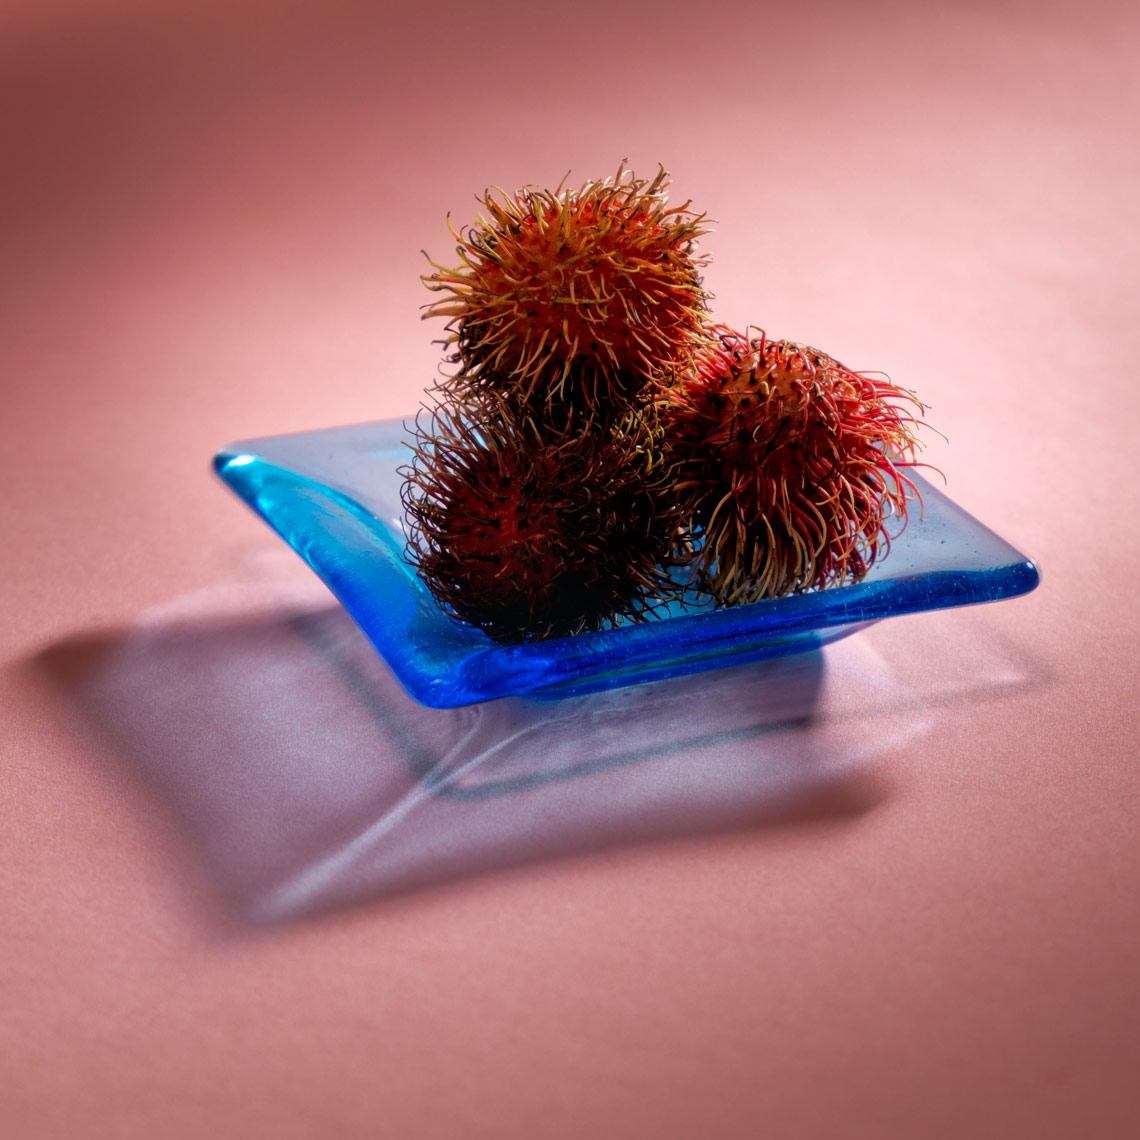 rambutan fruit on a blue glass plate